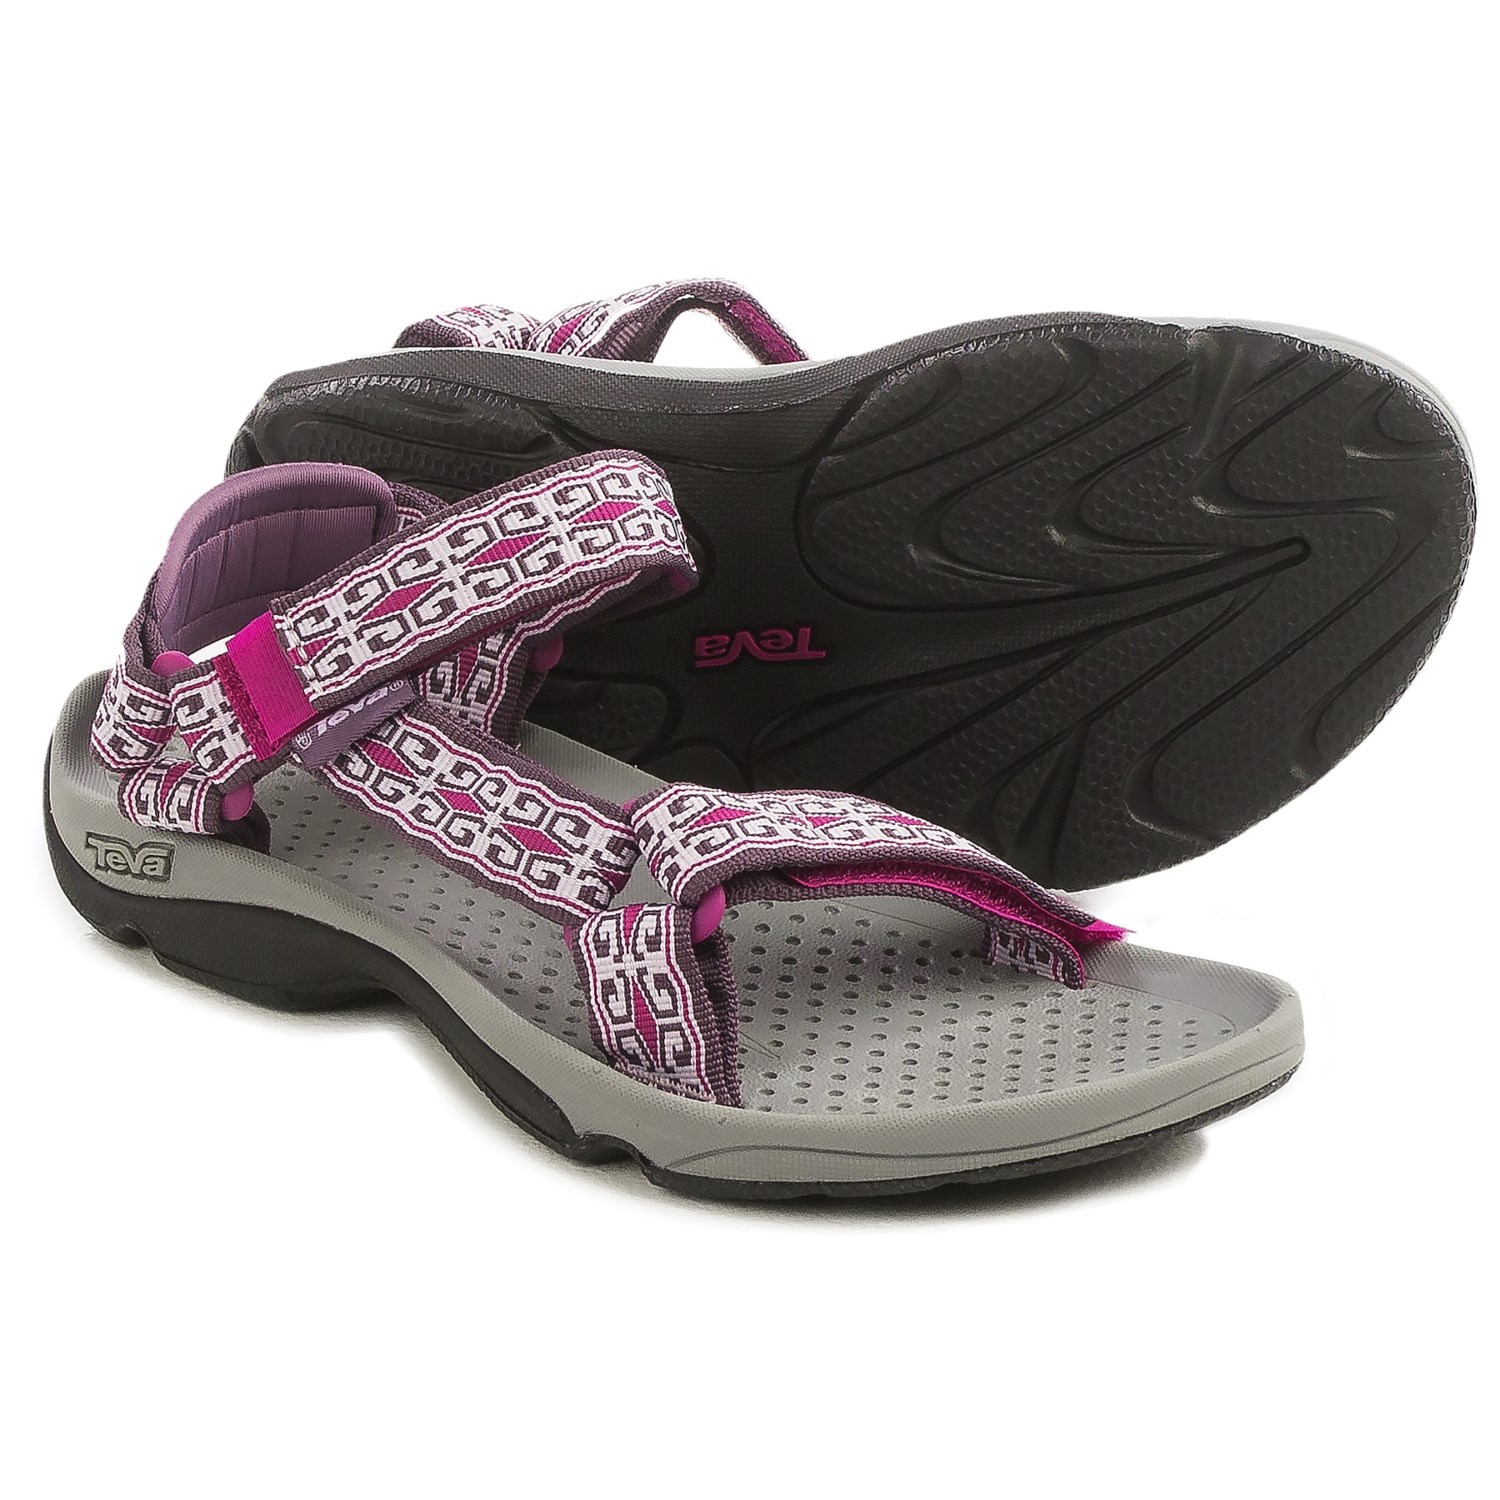 Teva Hurricane 3 Sport Sandals (For Women) - Save 66%